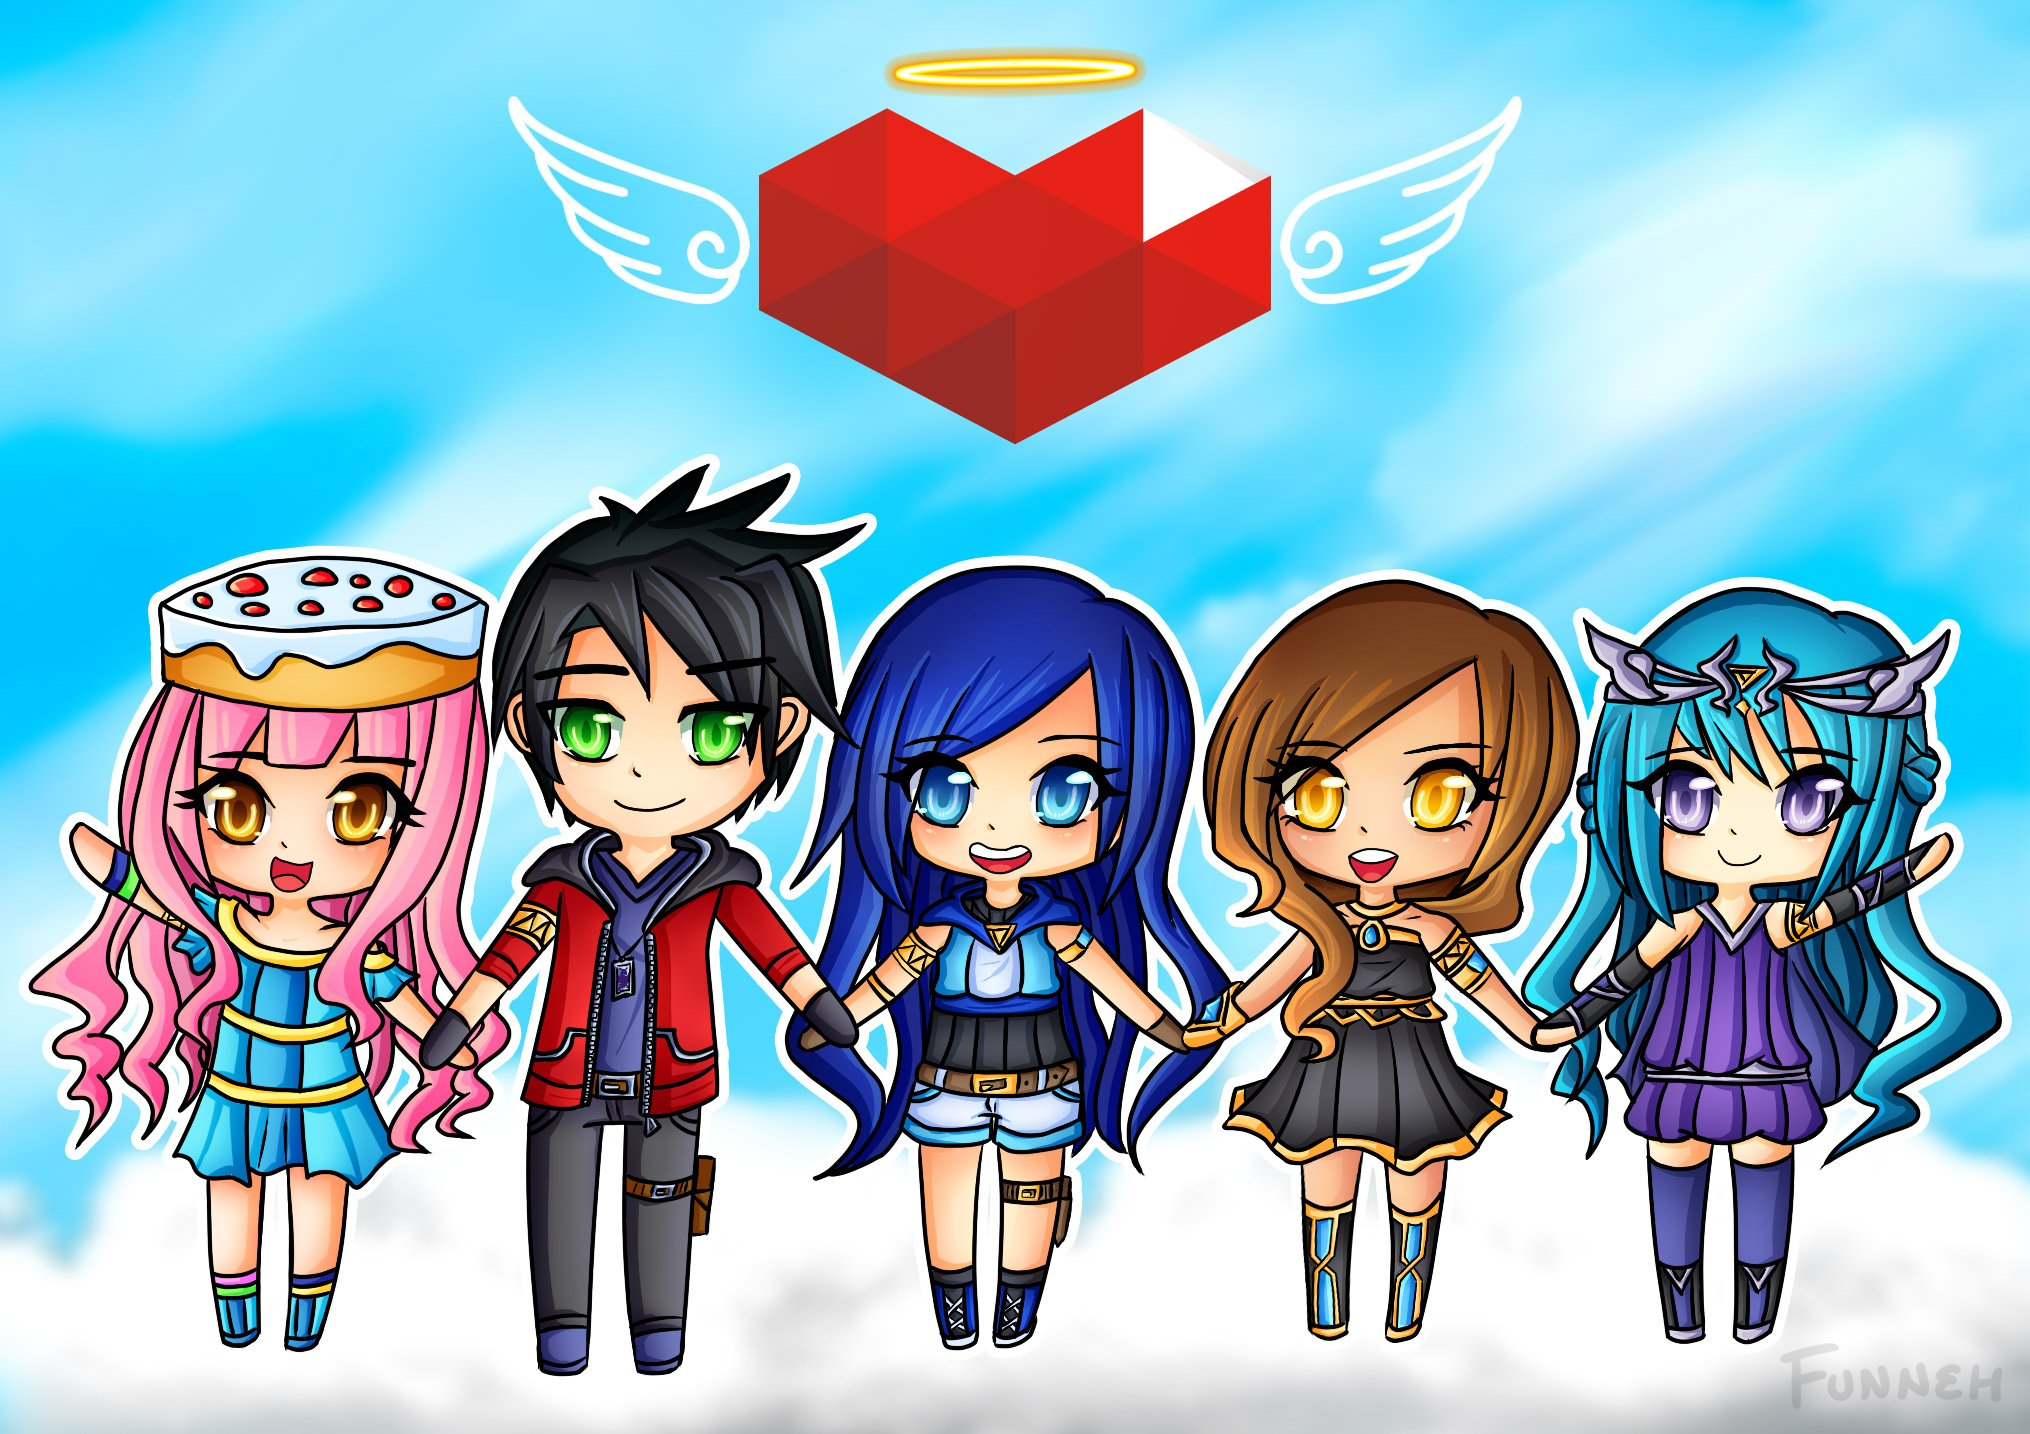 Itsfunneh On Twitter Quot How Do You Guys Like Our Charity